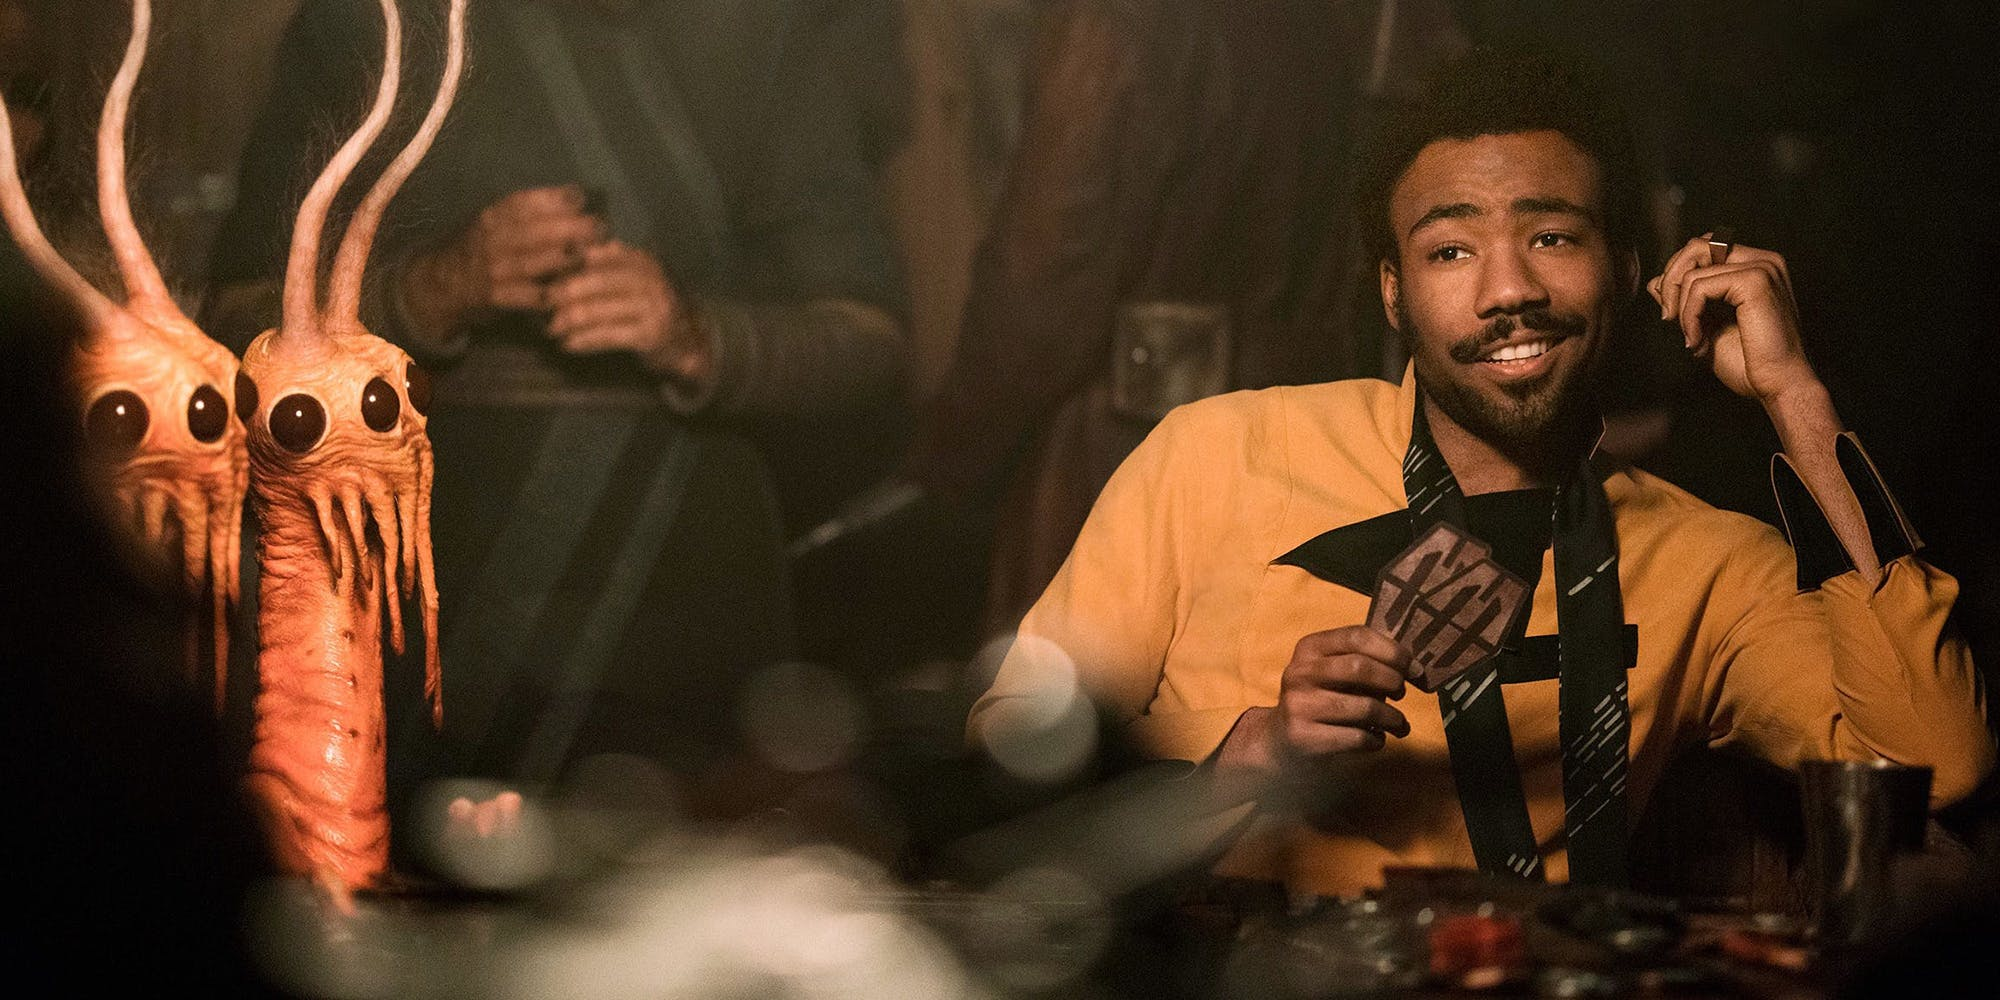 360 view of Lando and Han meeting in 'Solo: A Star Wars Story'